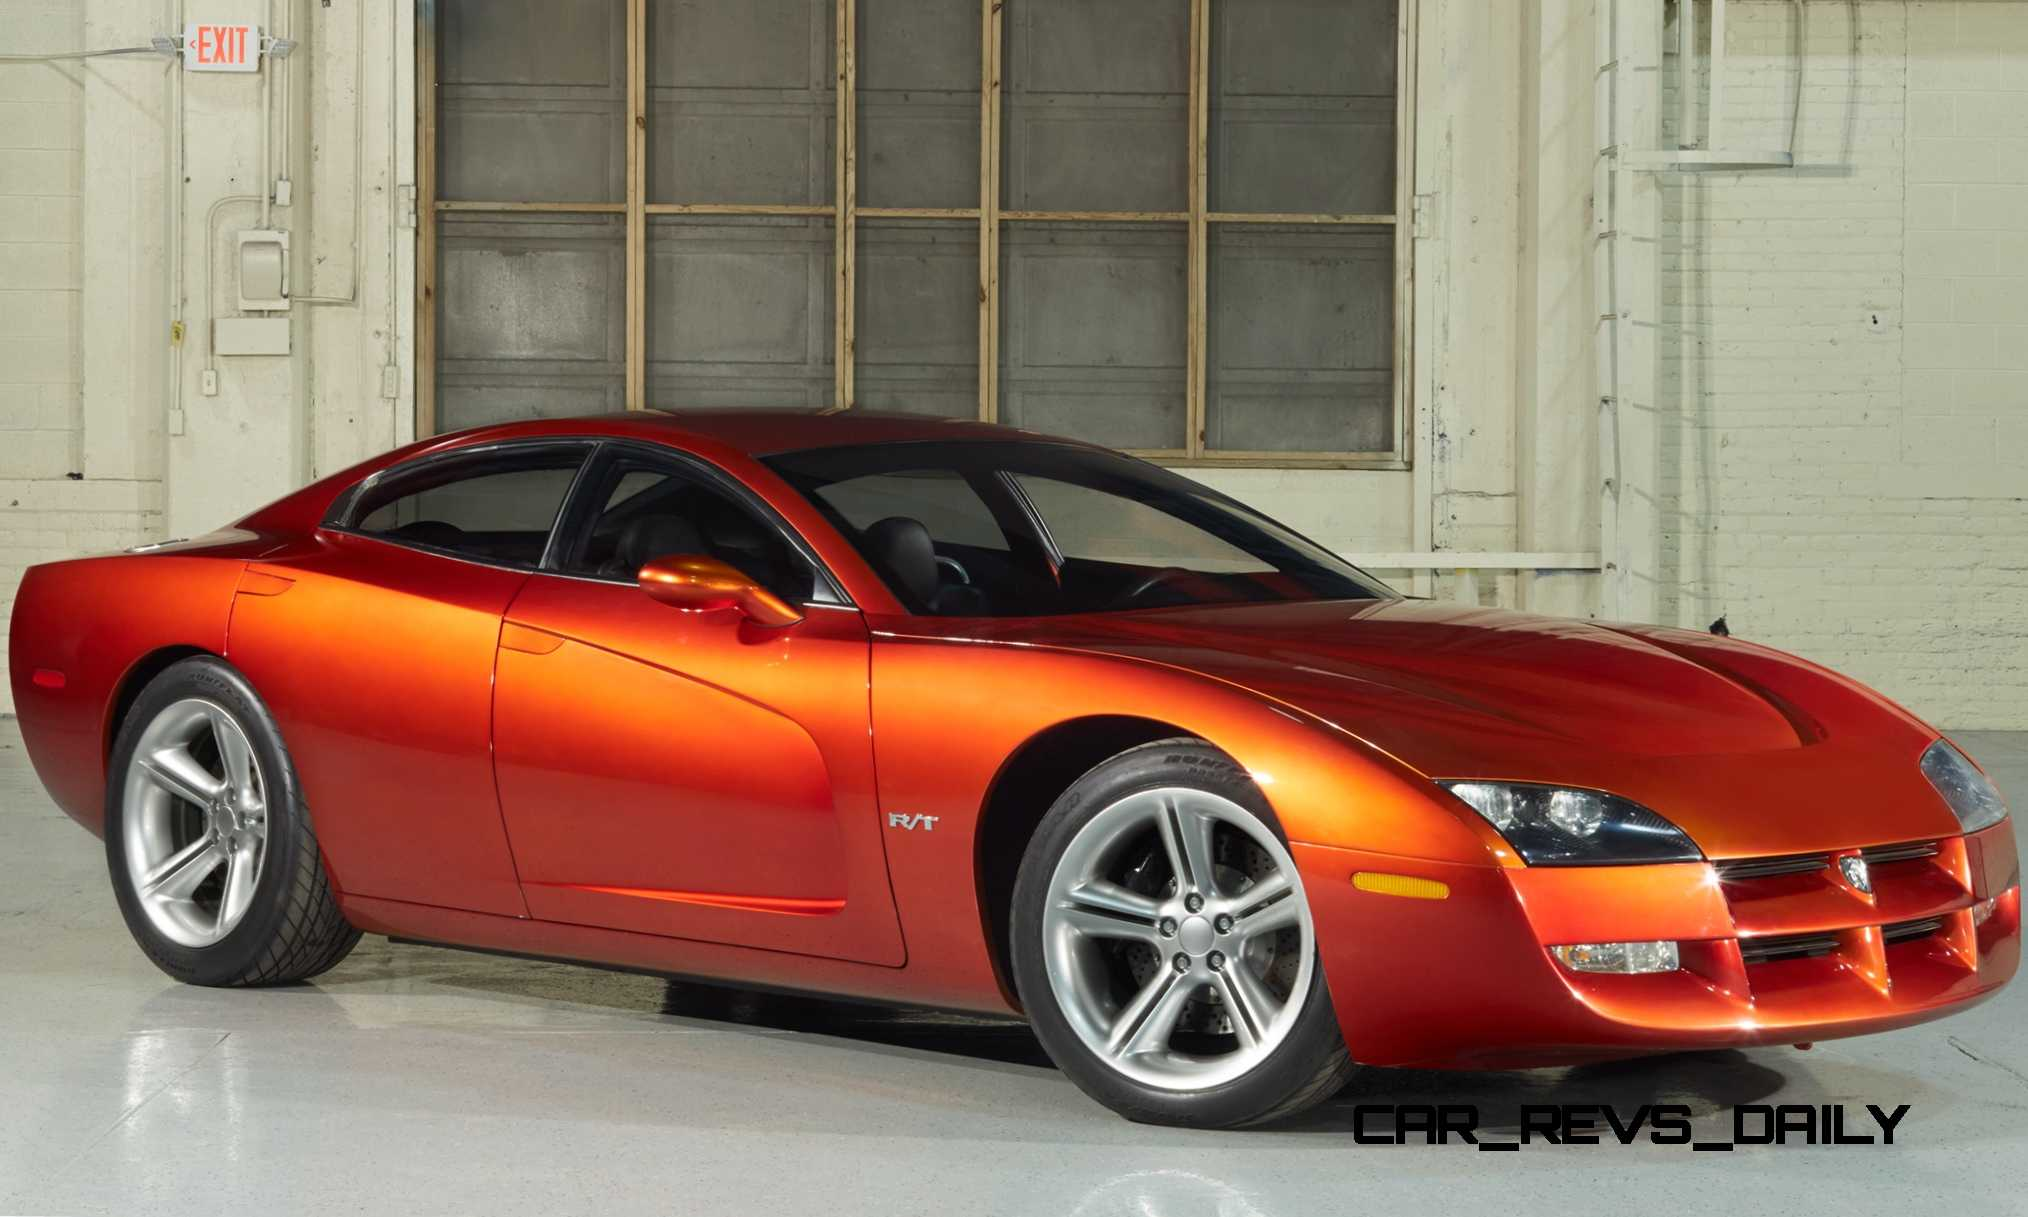 1999 dodge charger concept 15 - 2016 Dodge Charger 2 Door